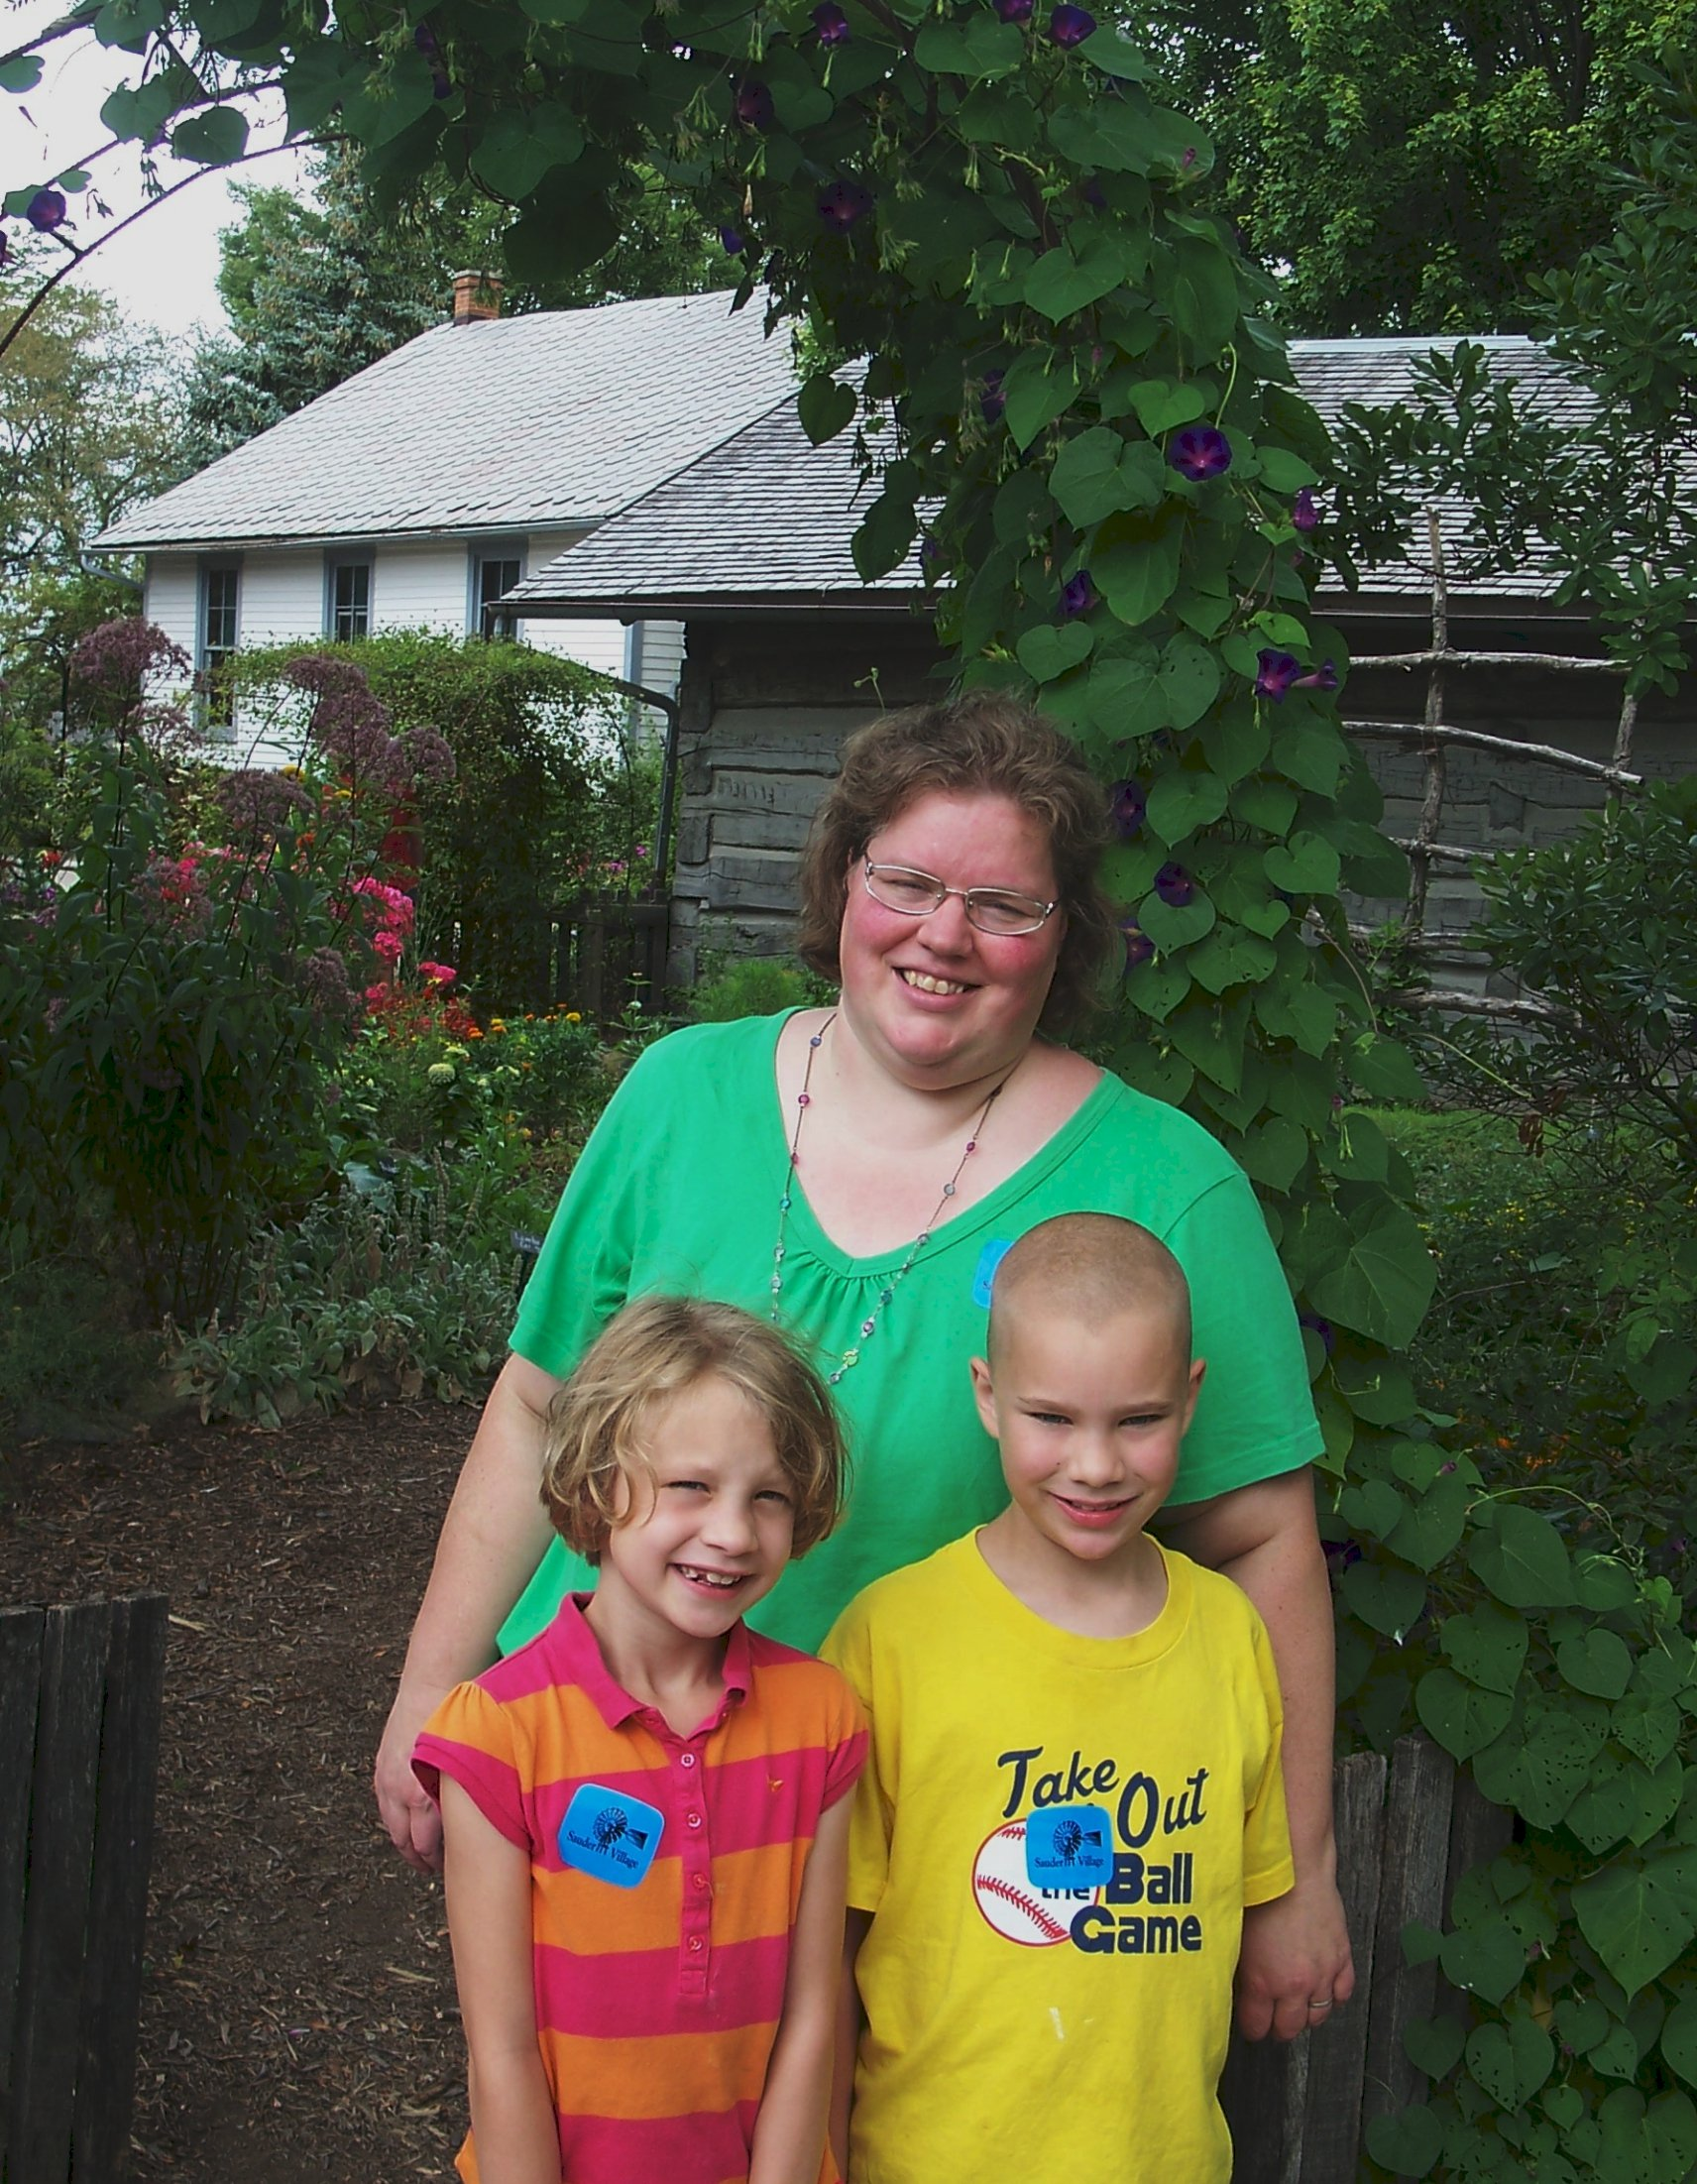 Karen Fritzemeier with her children Greta (6) and Micah (8) visiting Sauder Village in Archbold, Ohio